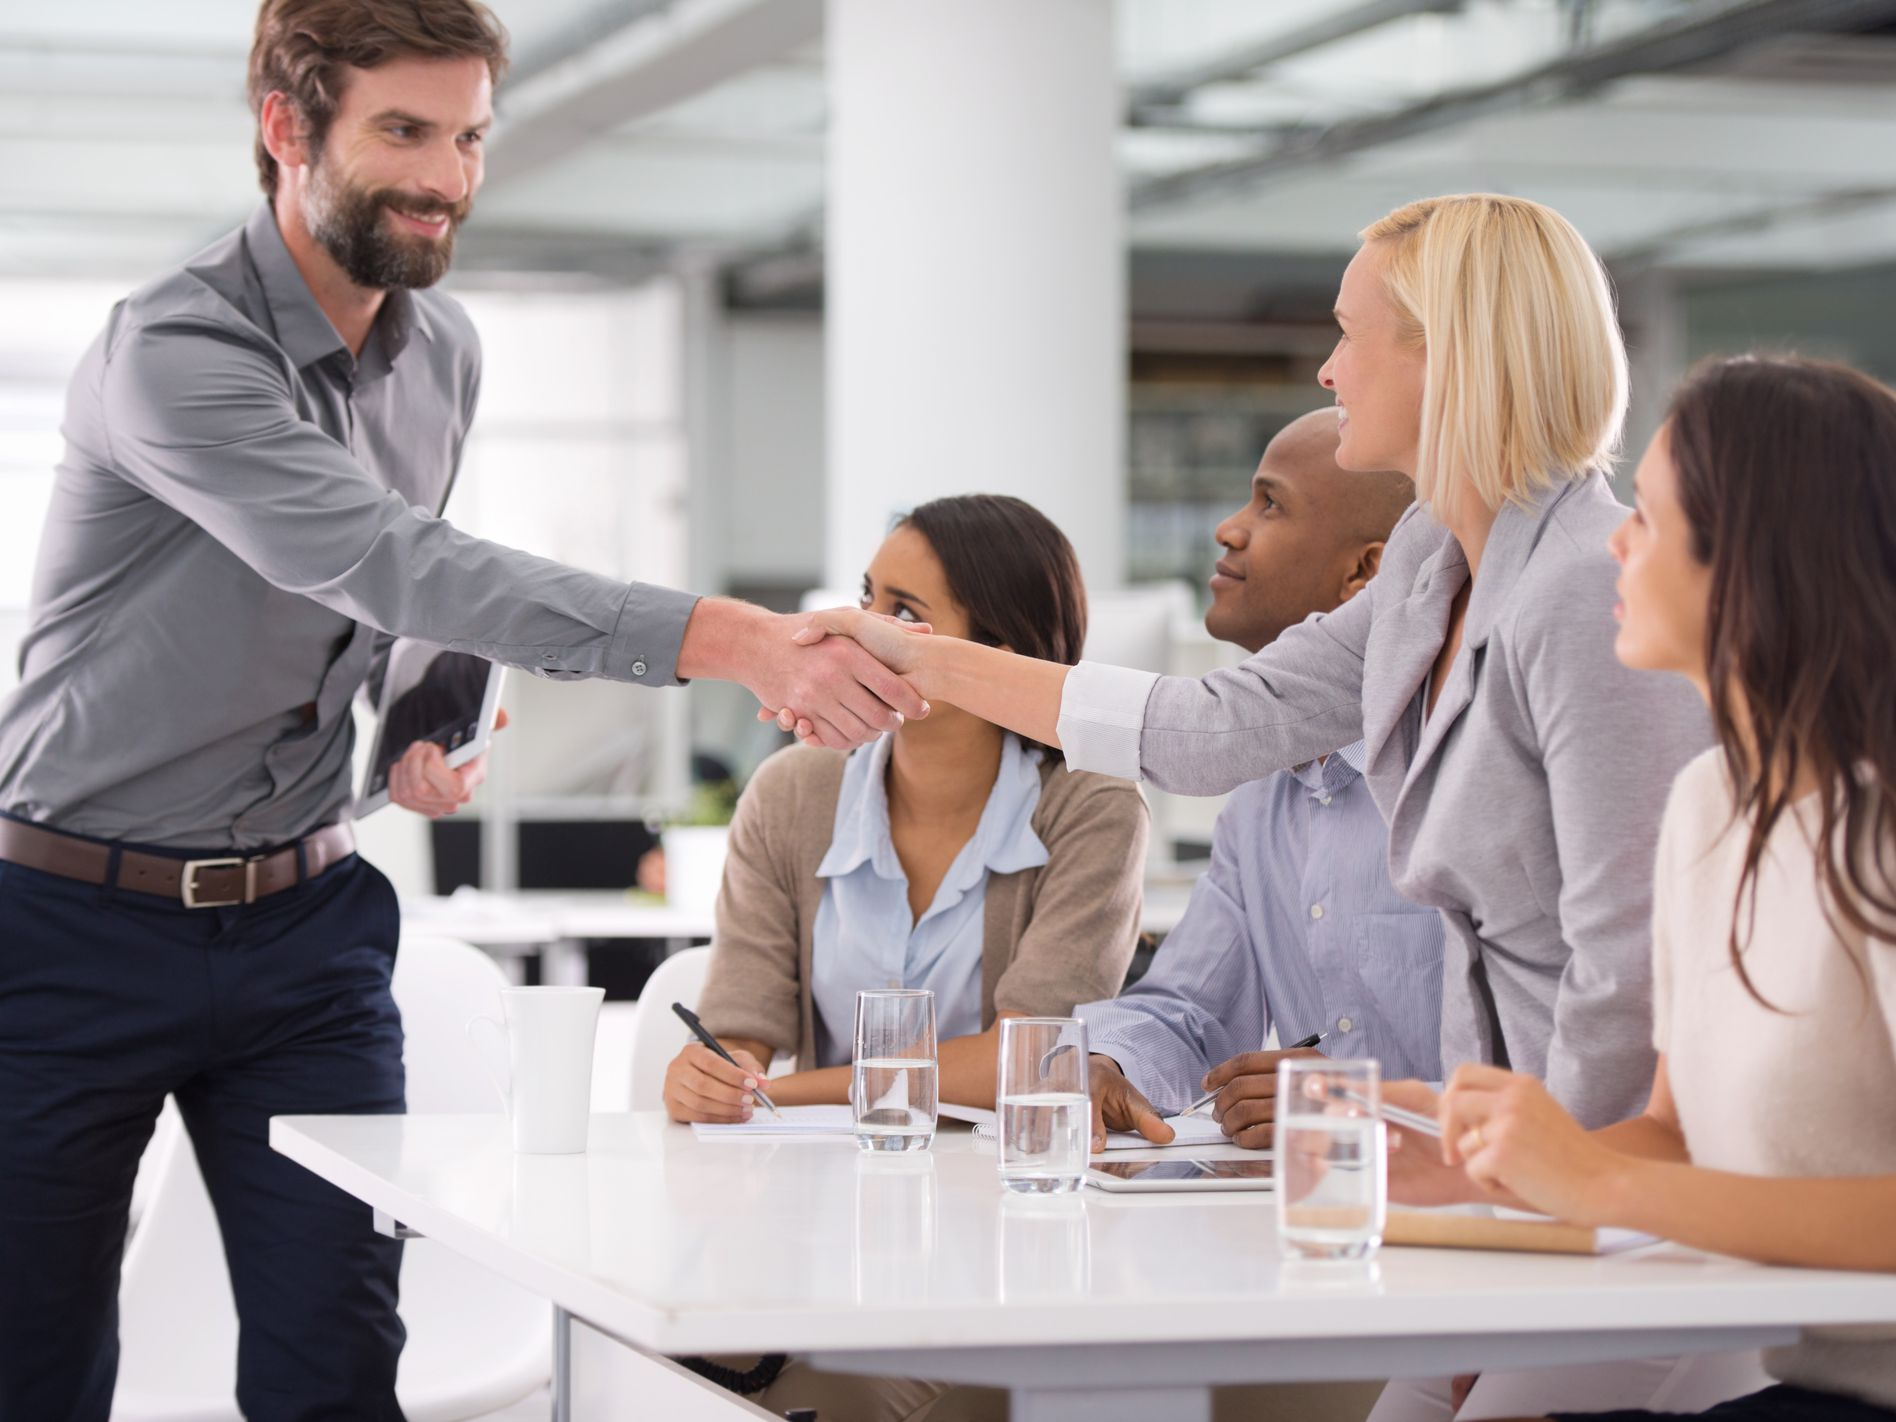 How to Make Your Business More Welcoming to Customers